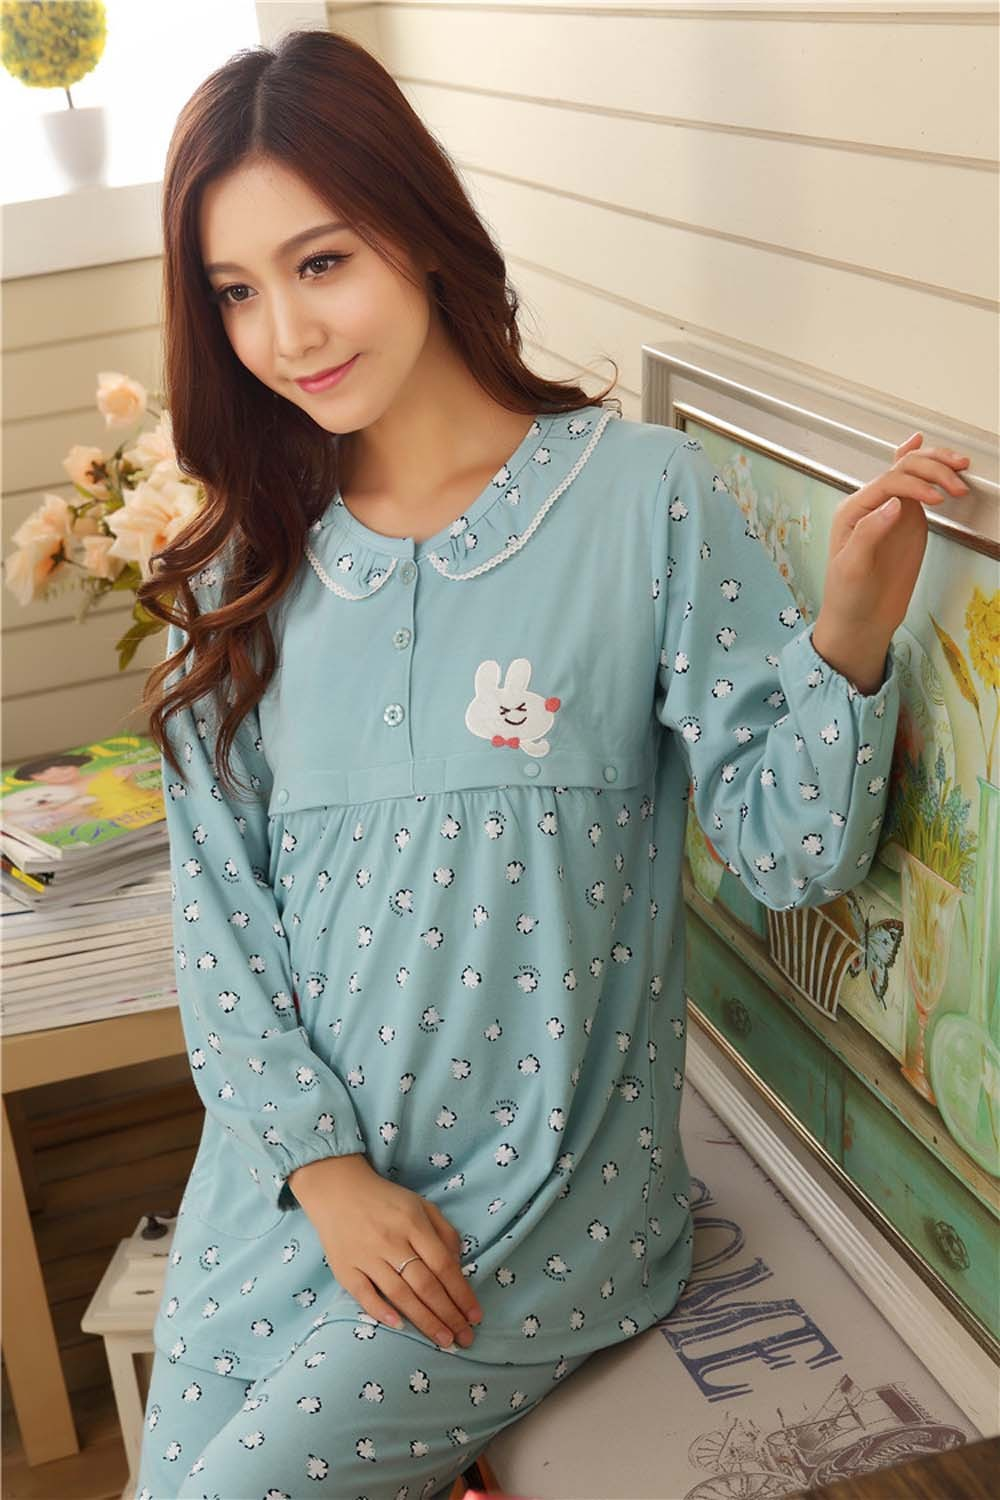 Pregnant-Woman-Pajamas-Postpartum-Breastfeeding-Month-Of-Serving-Lapel-Clothes-Long-sleeve-Sleepwear-Suits-CL0800 (9)